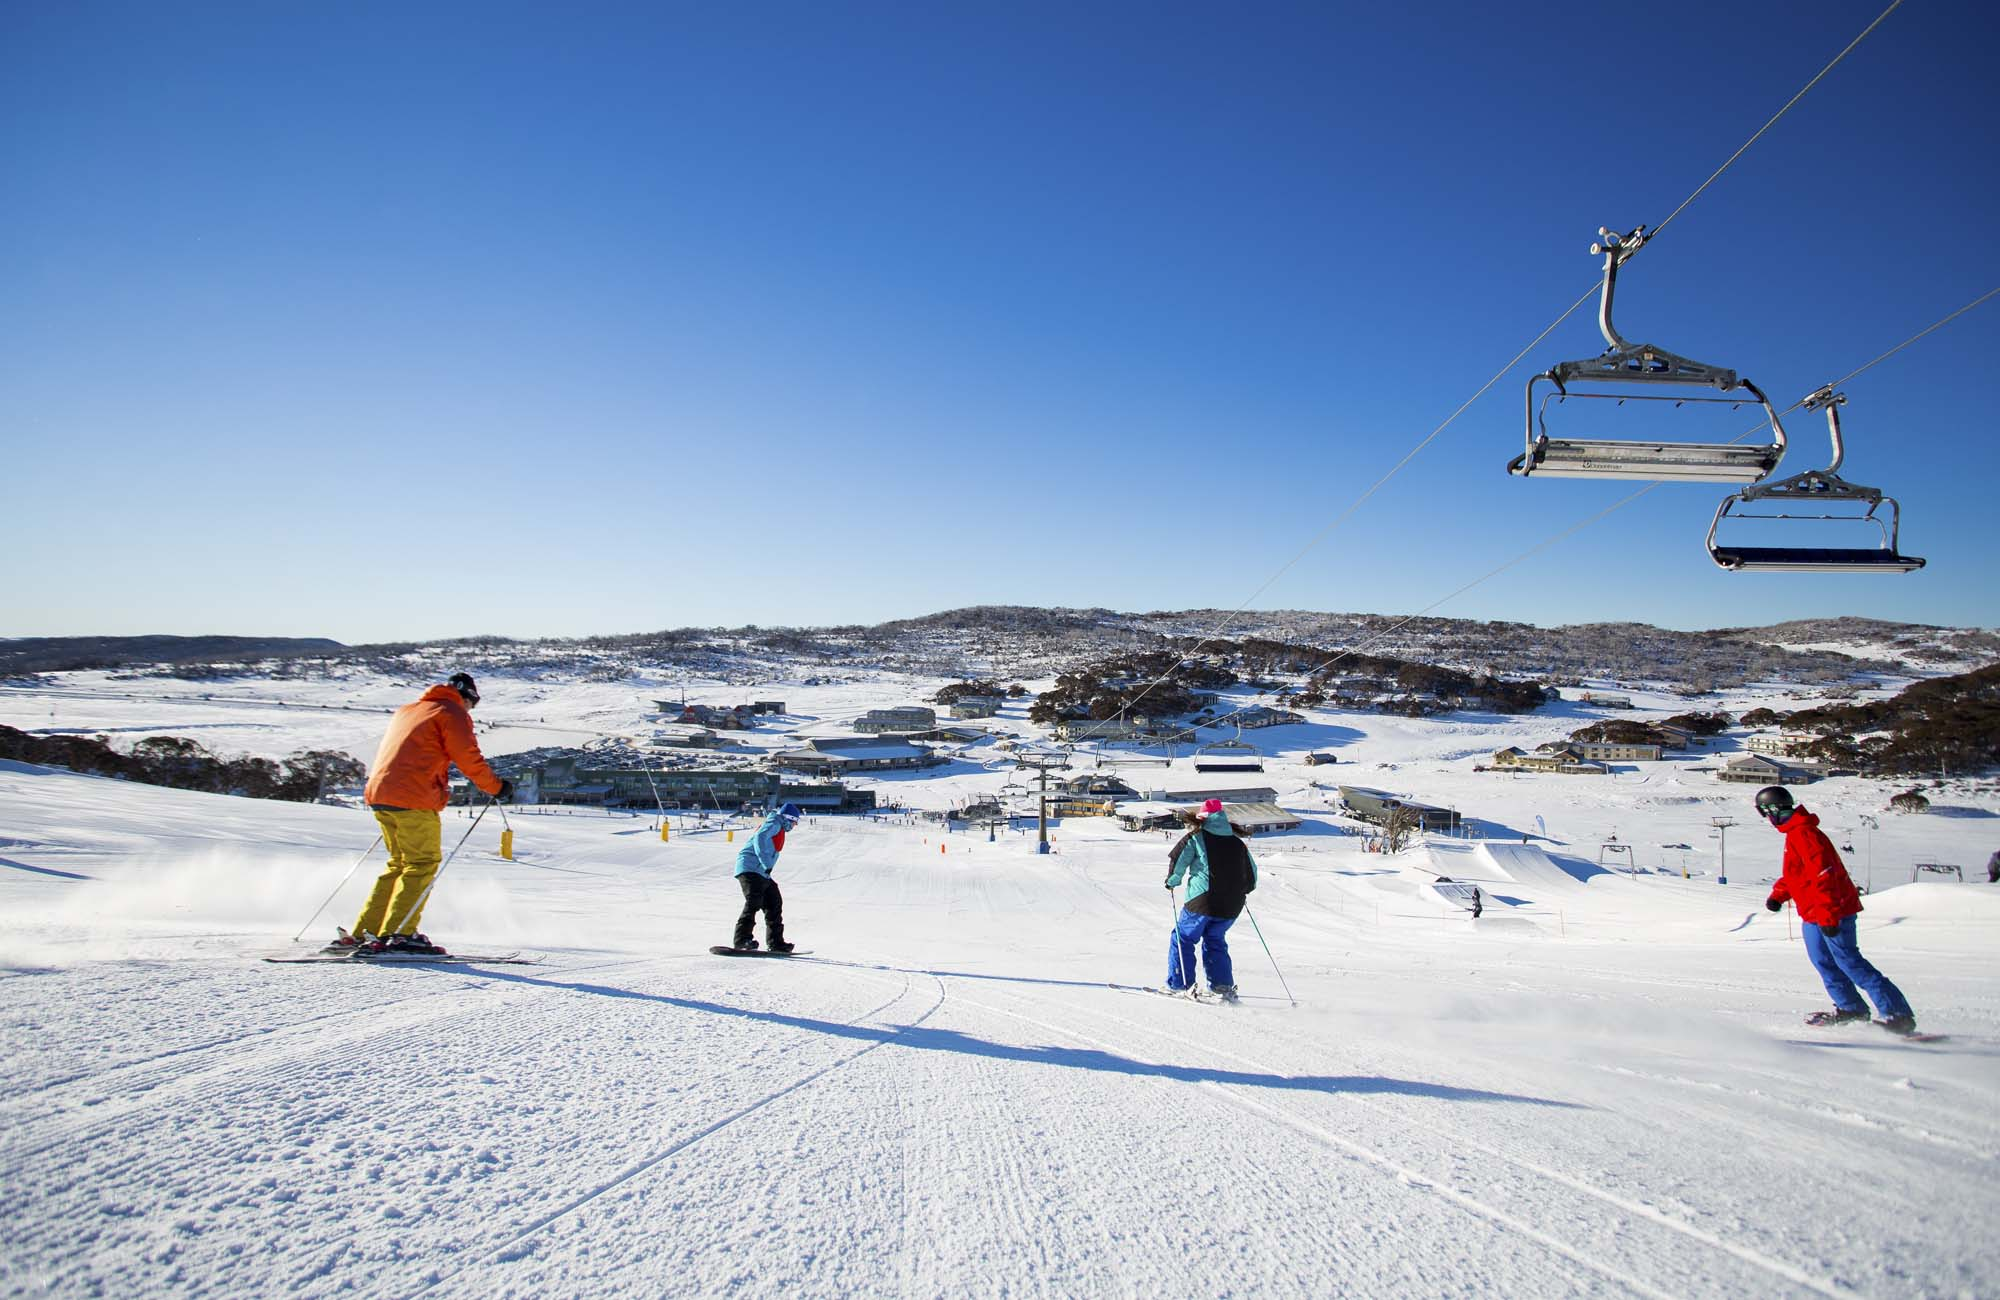 Perisher Range Ski Resort, Kosciuszko National Park. Photo: A Lloyd/Perisher